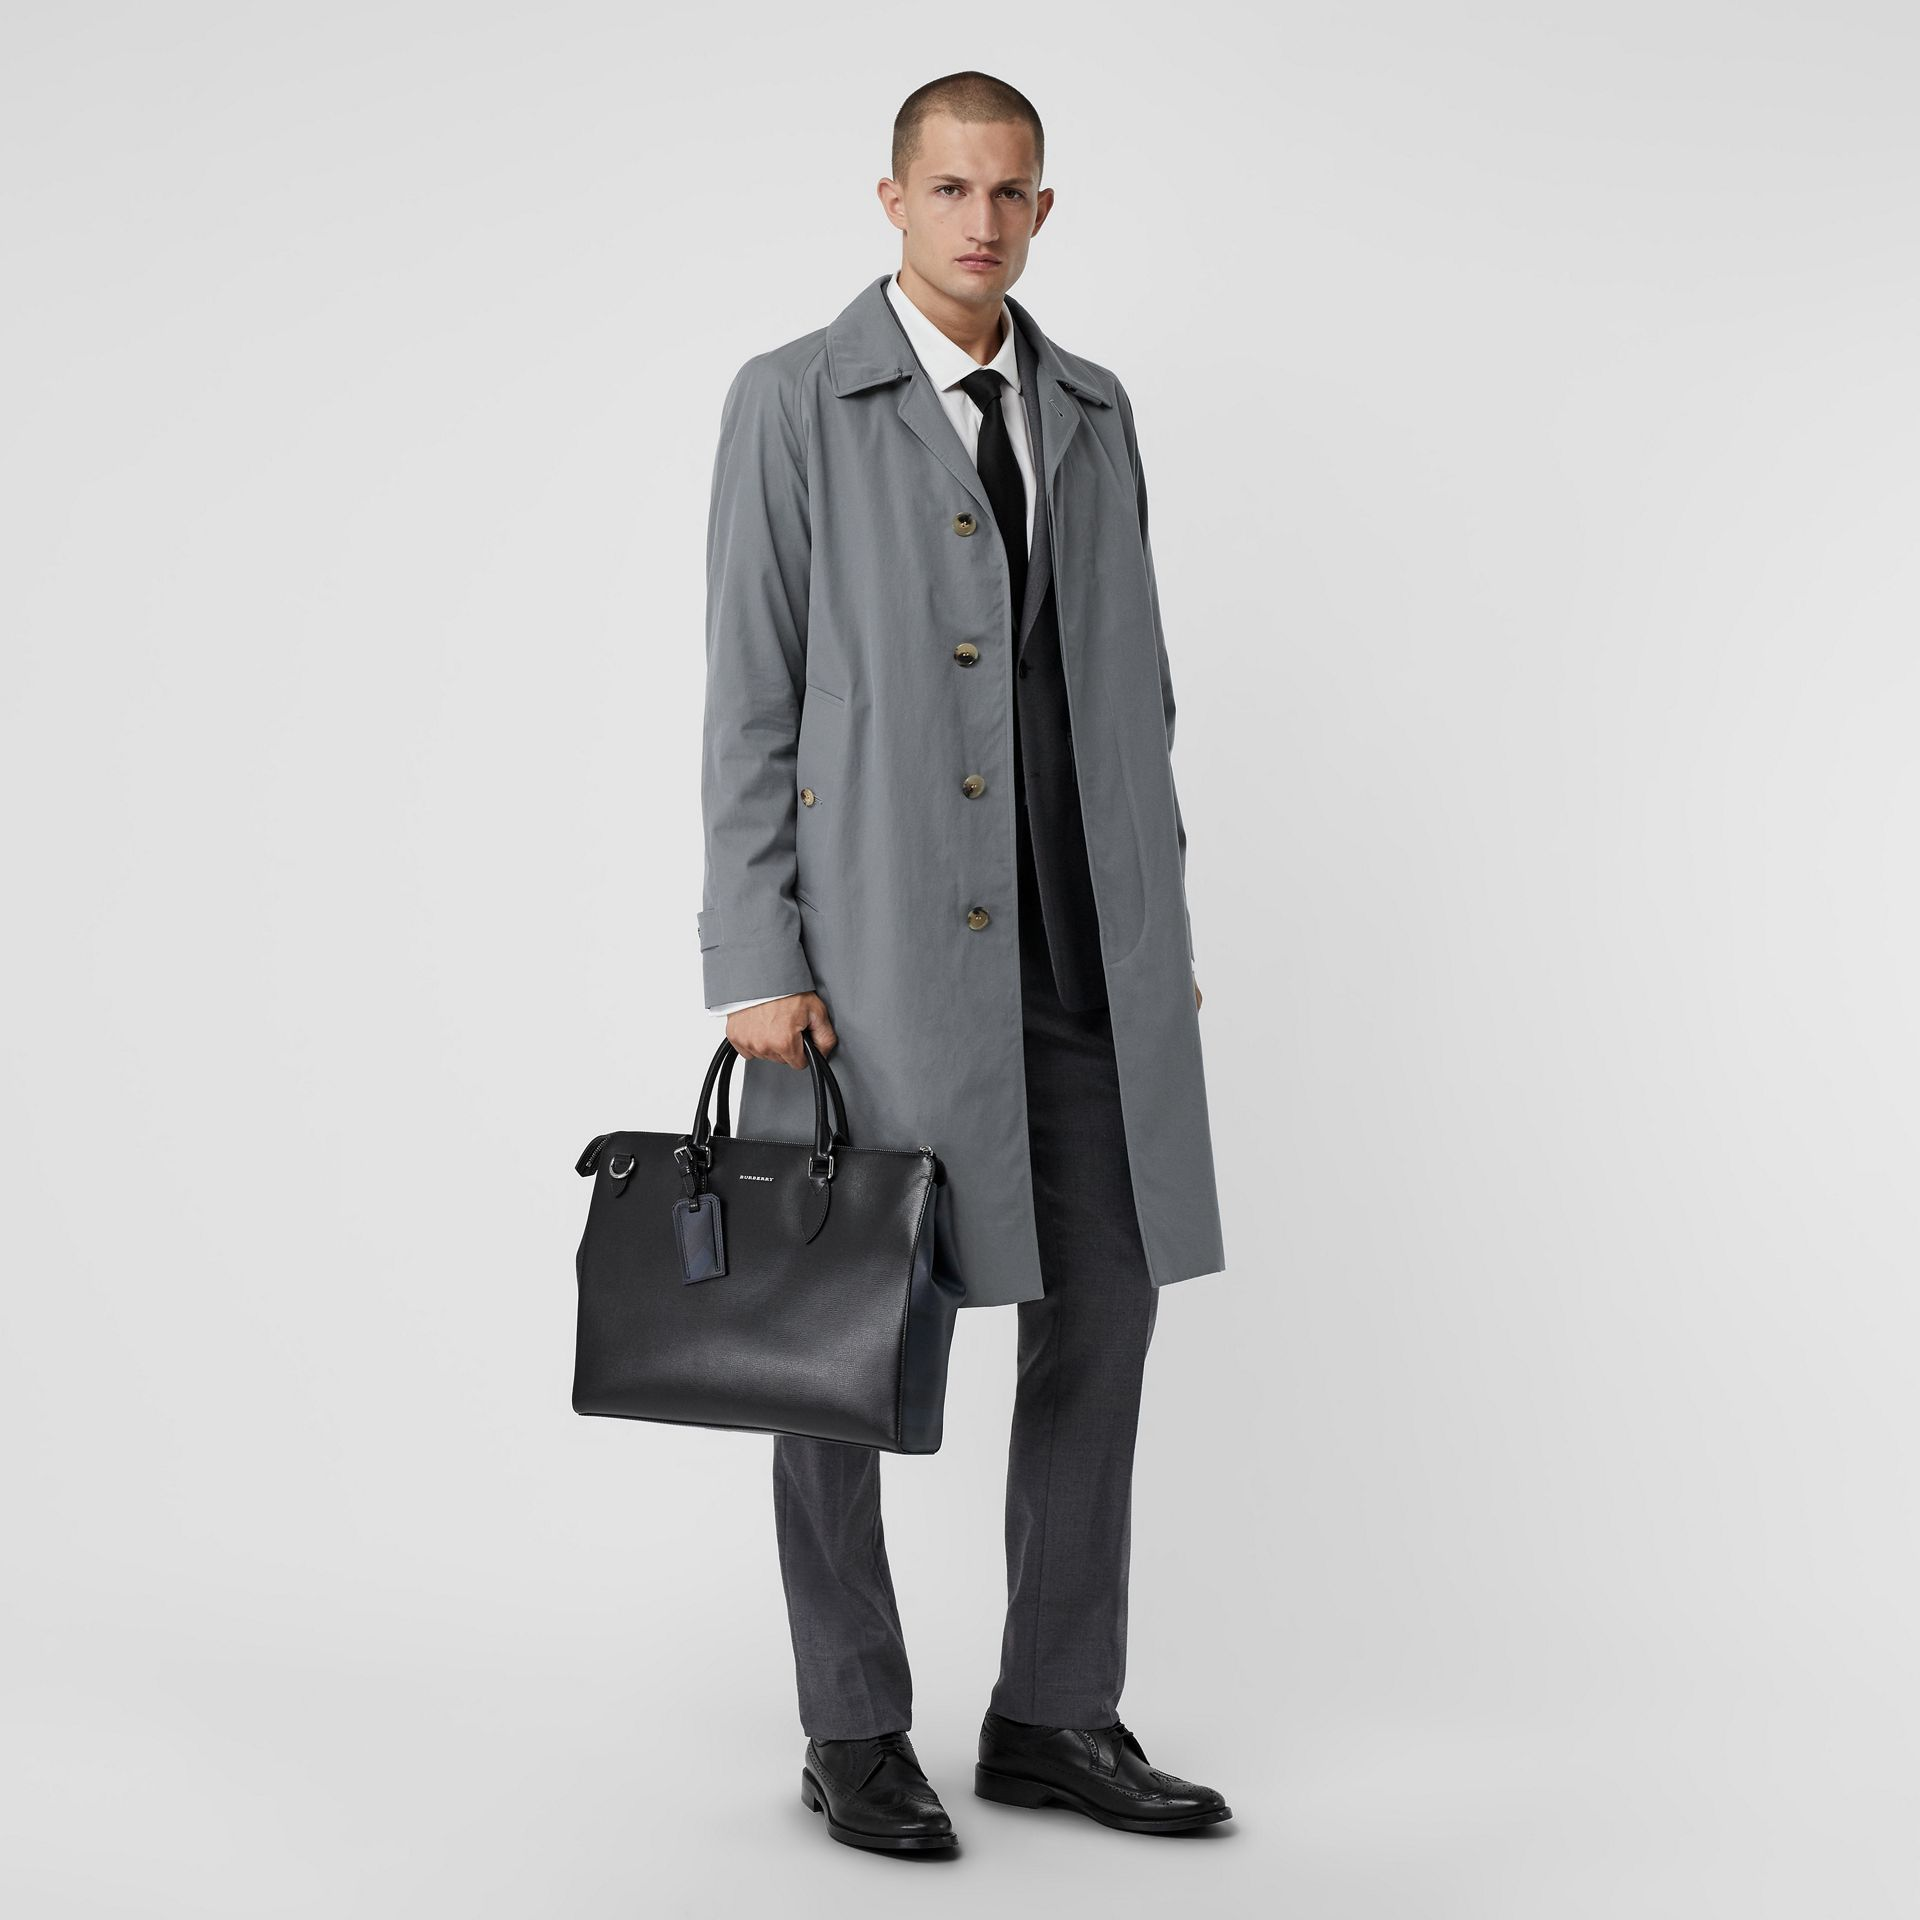 Large London Leather Briefcase in Black - Men | Burberry Australia - gallery image 1